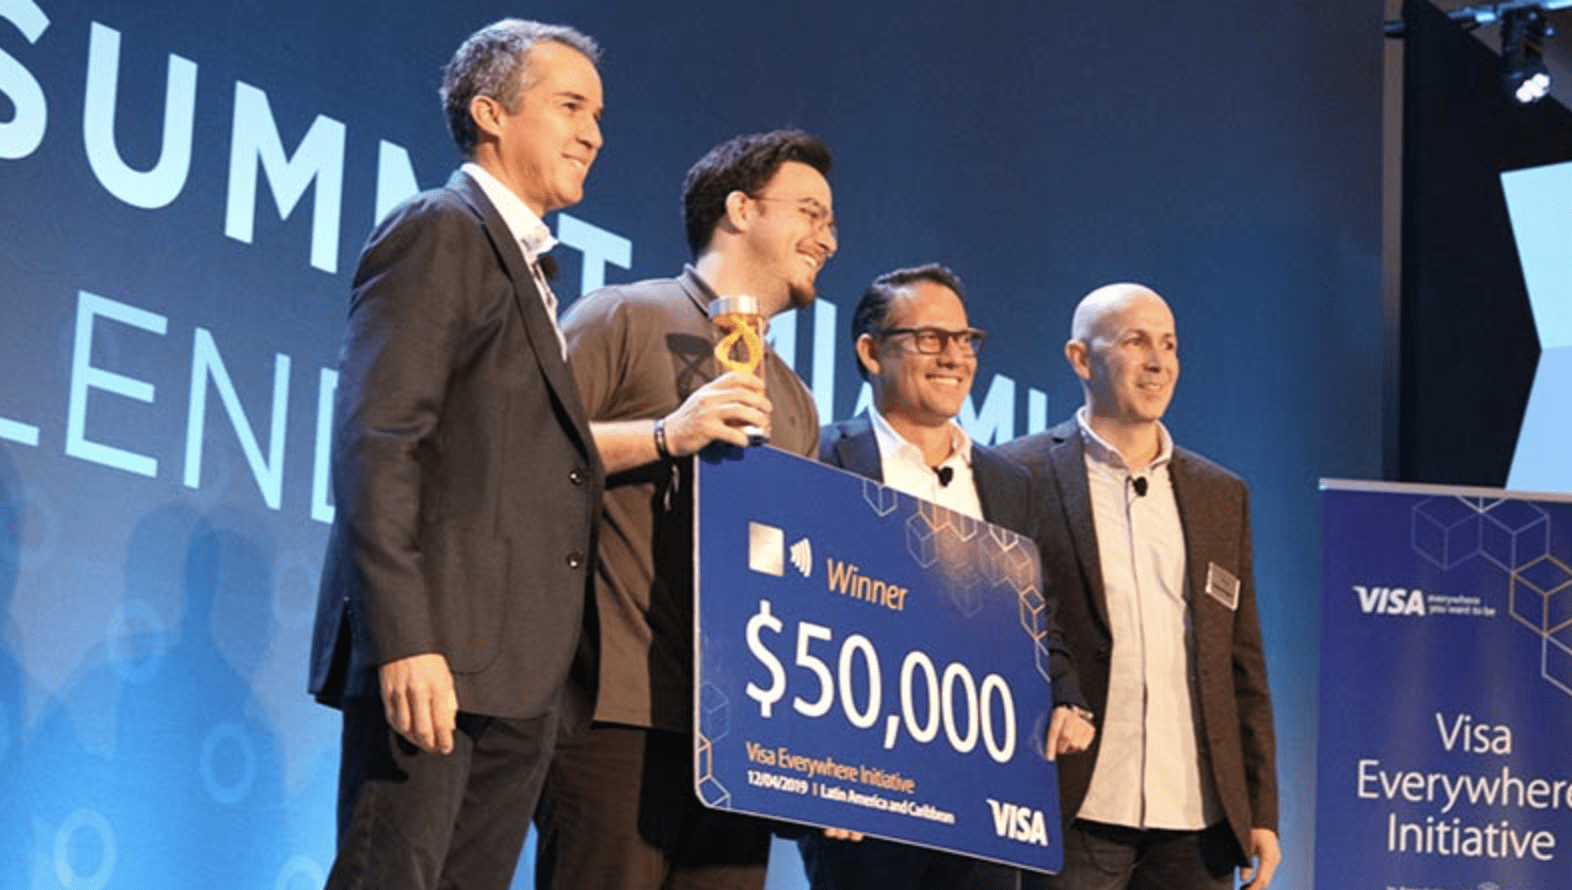 Visa Everywhere Initiative Global Innovation Competition 2021 (Up to $100,000 USD)